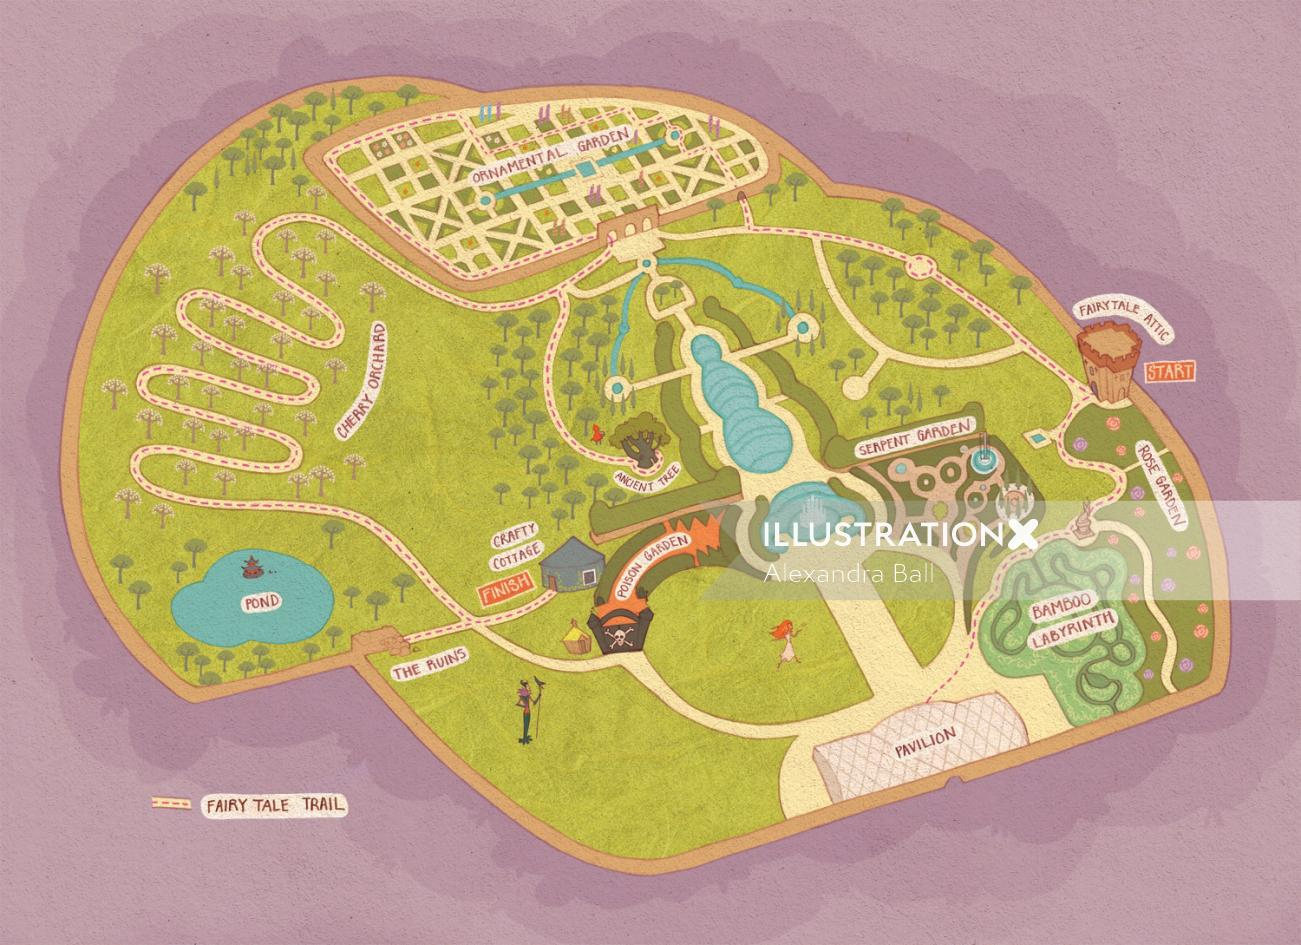 An illustration of alnwick garden map